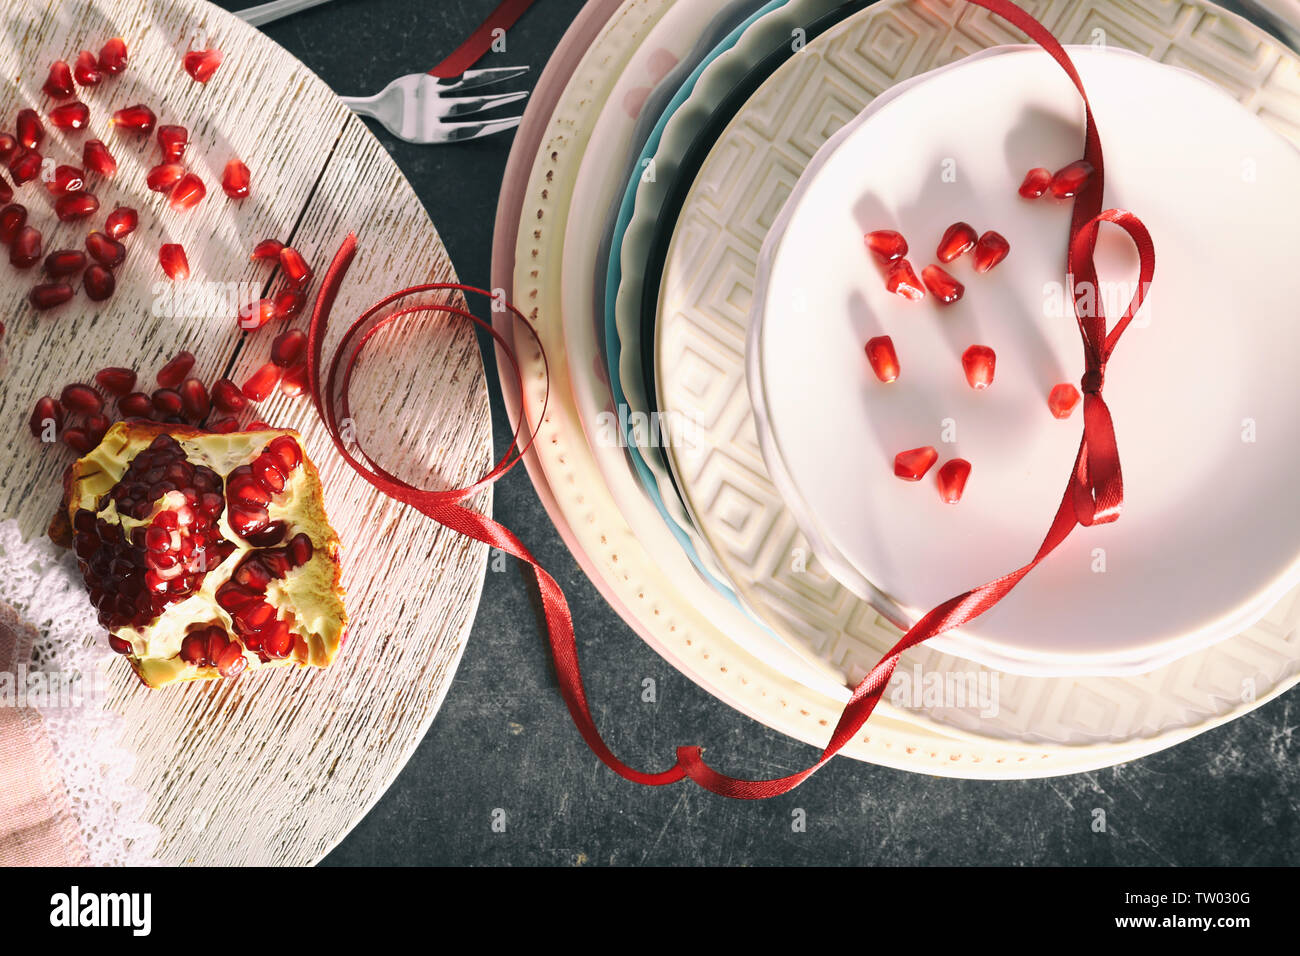 Plates and pomegranate on table - Stock Image